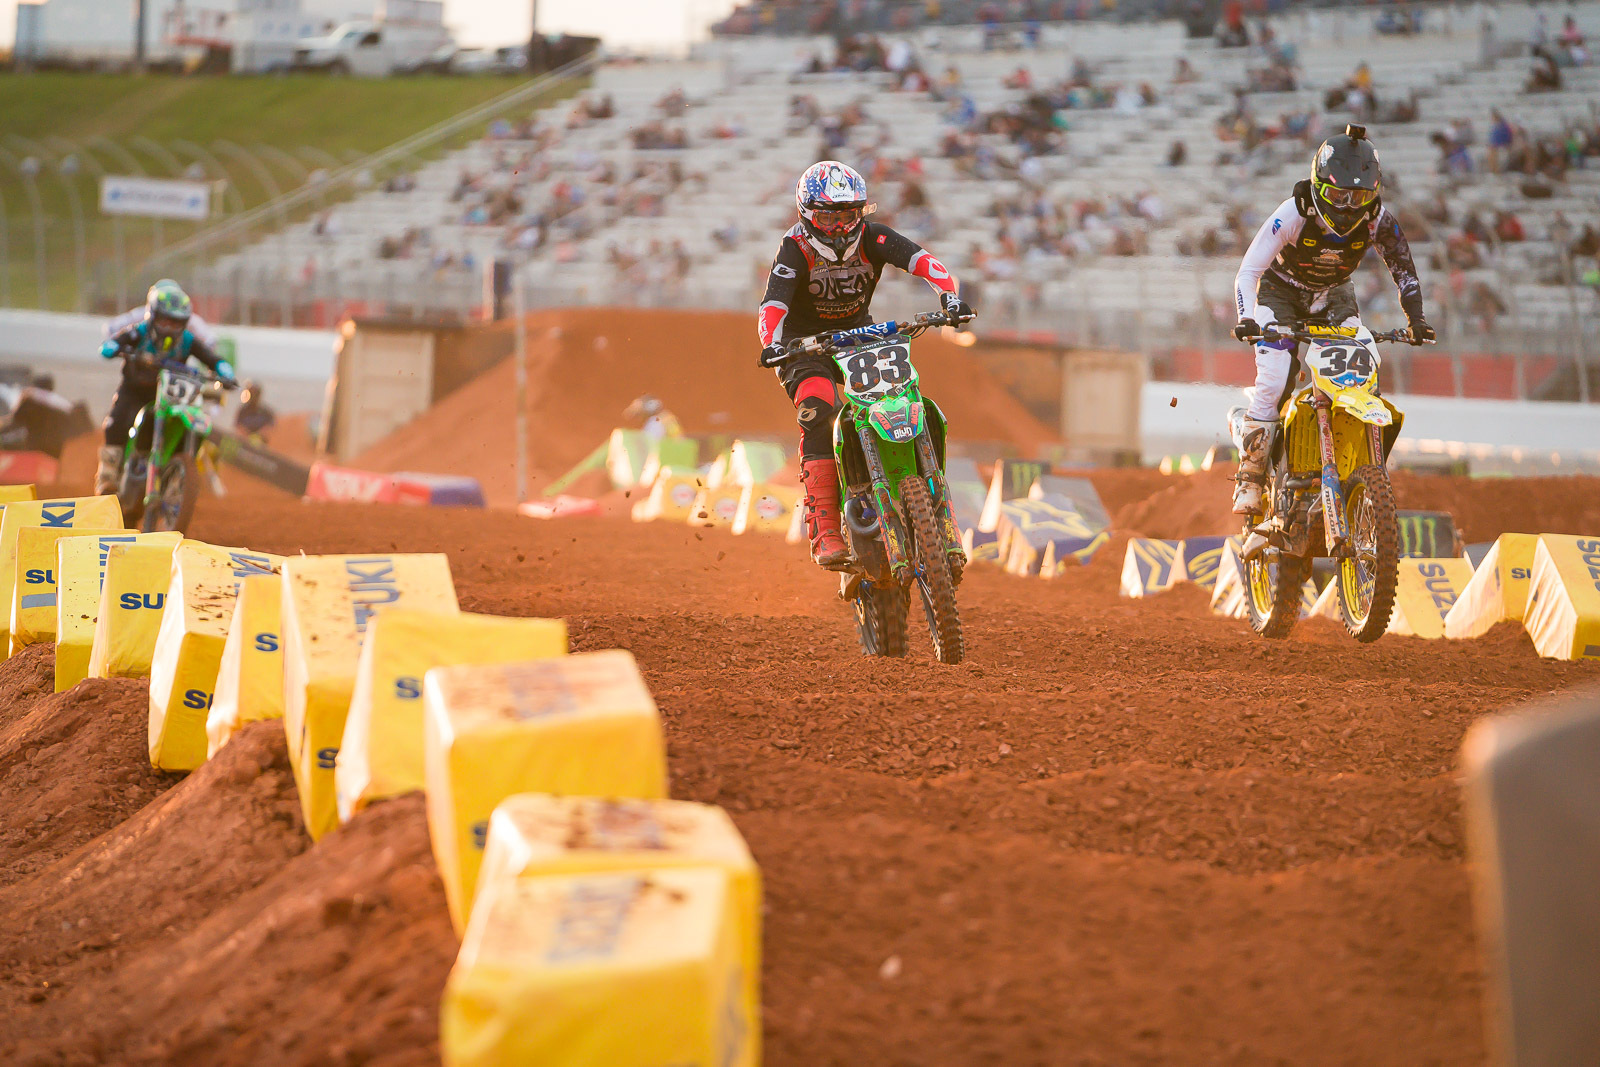 2021-ATLANTA-THREE-SUPERCROSS_KICKSTART_0970